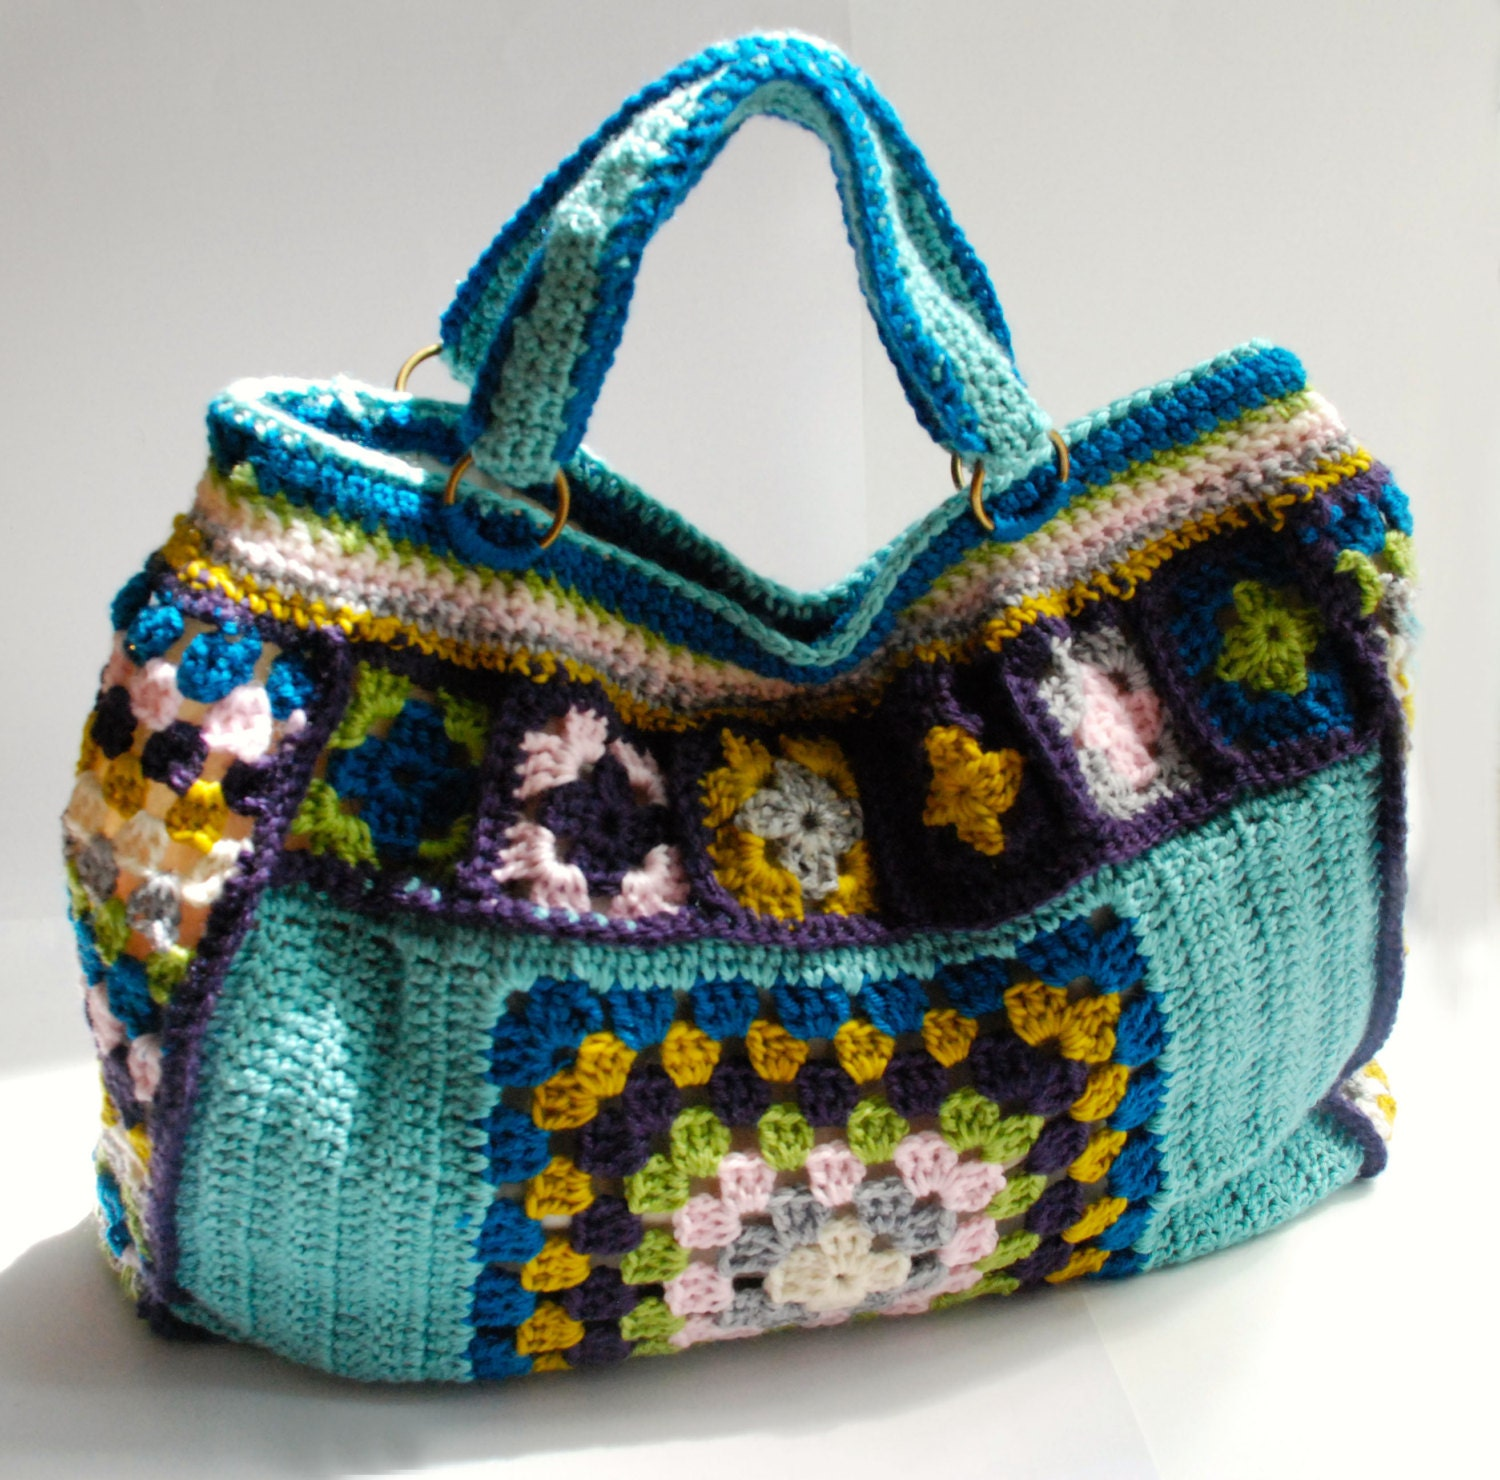 Crochet Bag Granny Square : Crochet purse granny square weekend bag pattern by KristisTwist